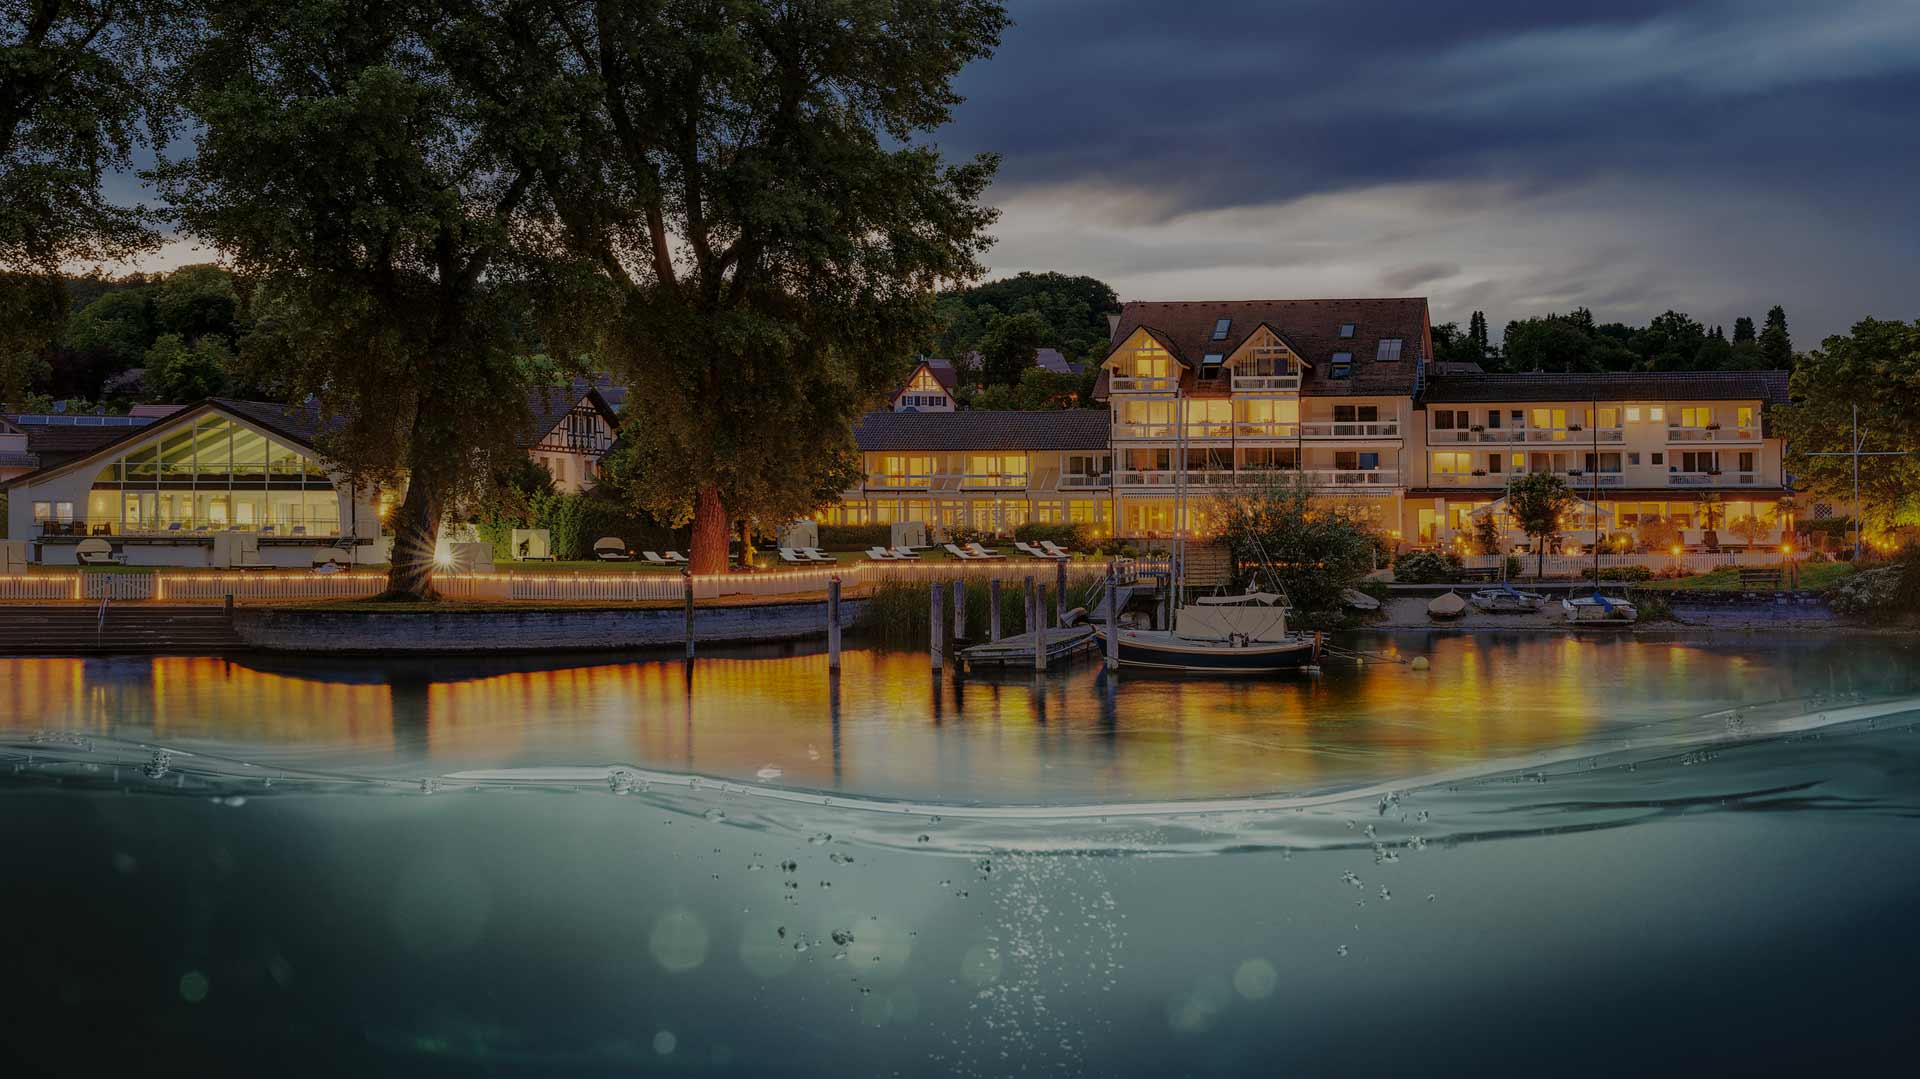 Blick vom See am Abend | Hotel HOERI am Bodensee